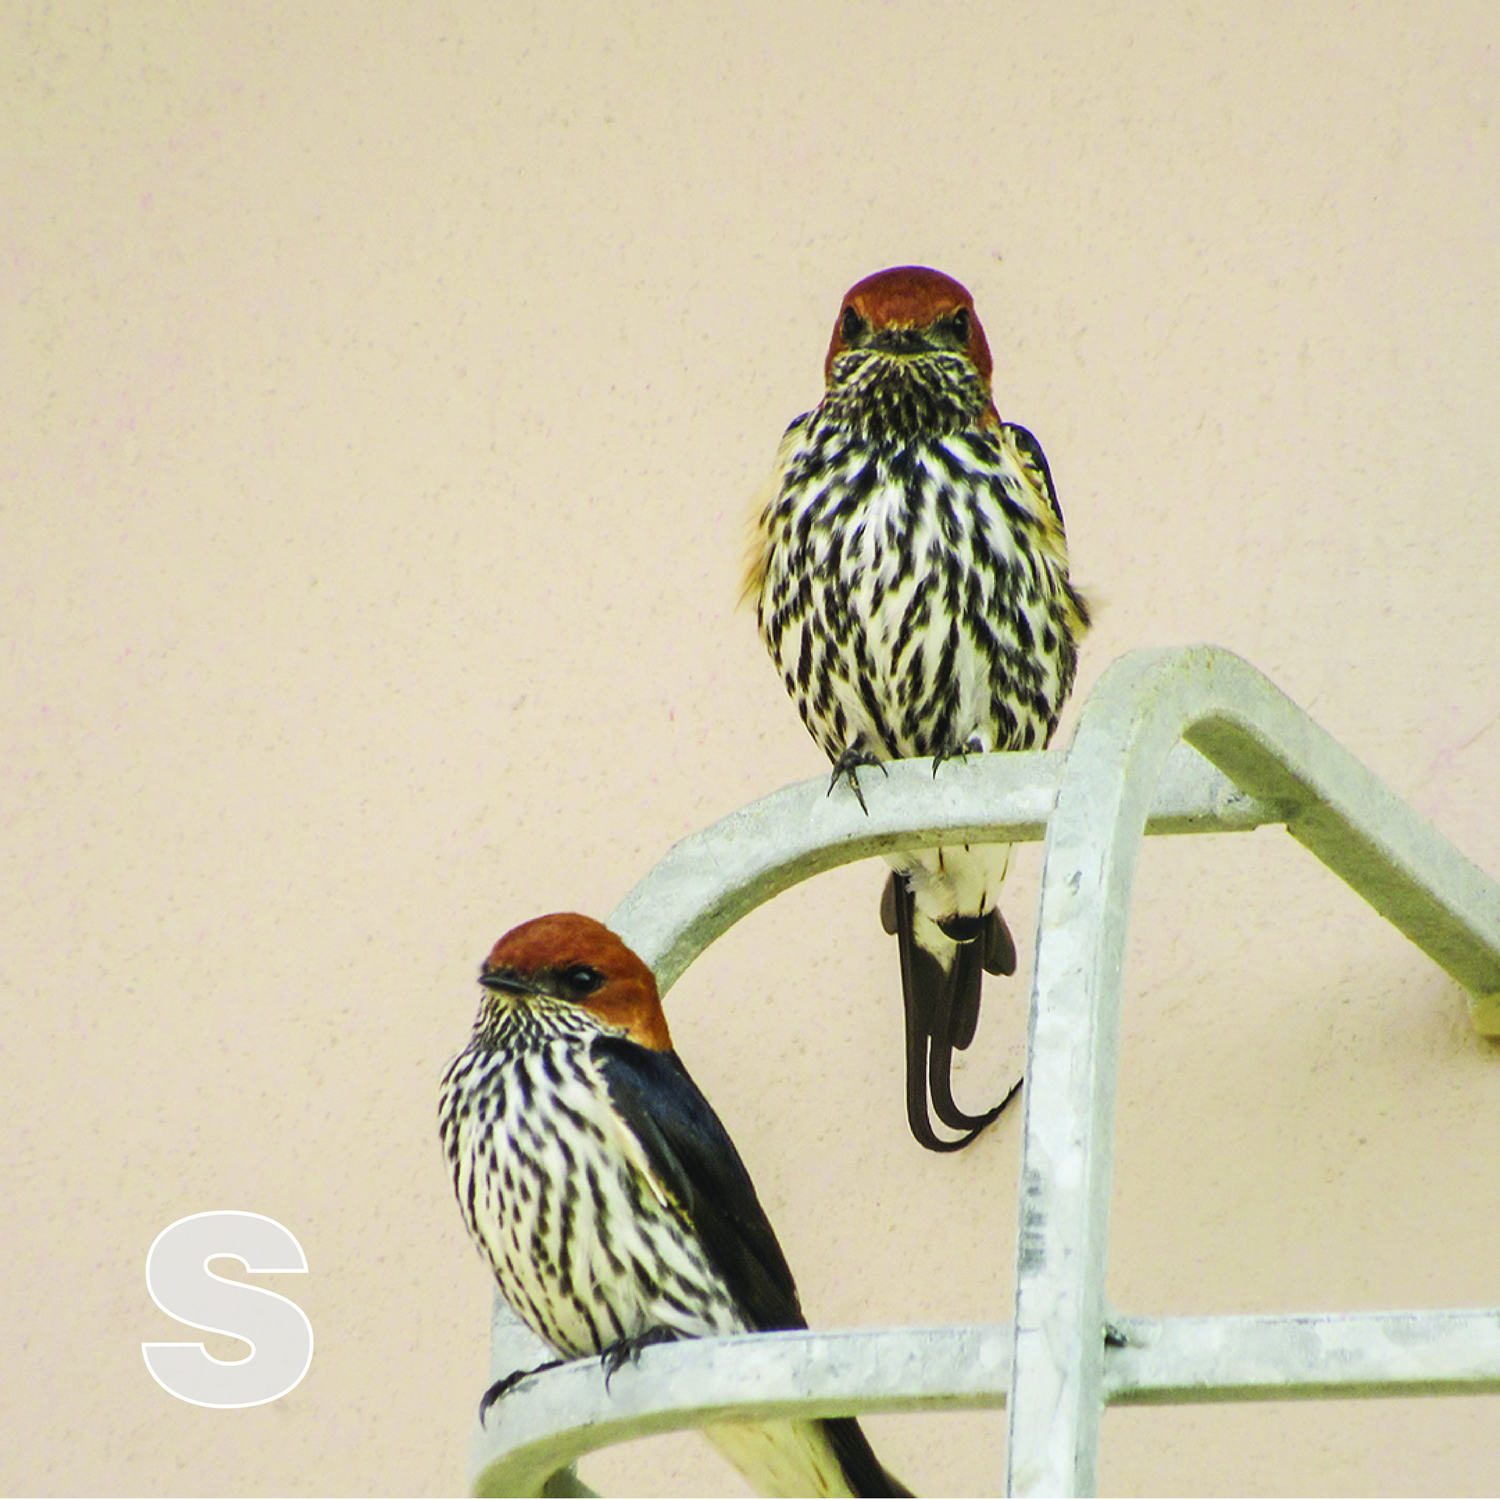 S is for Swallows